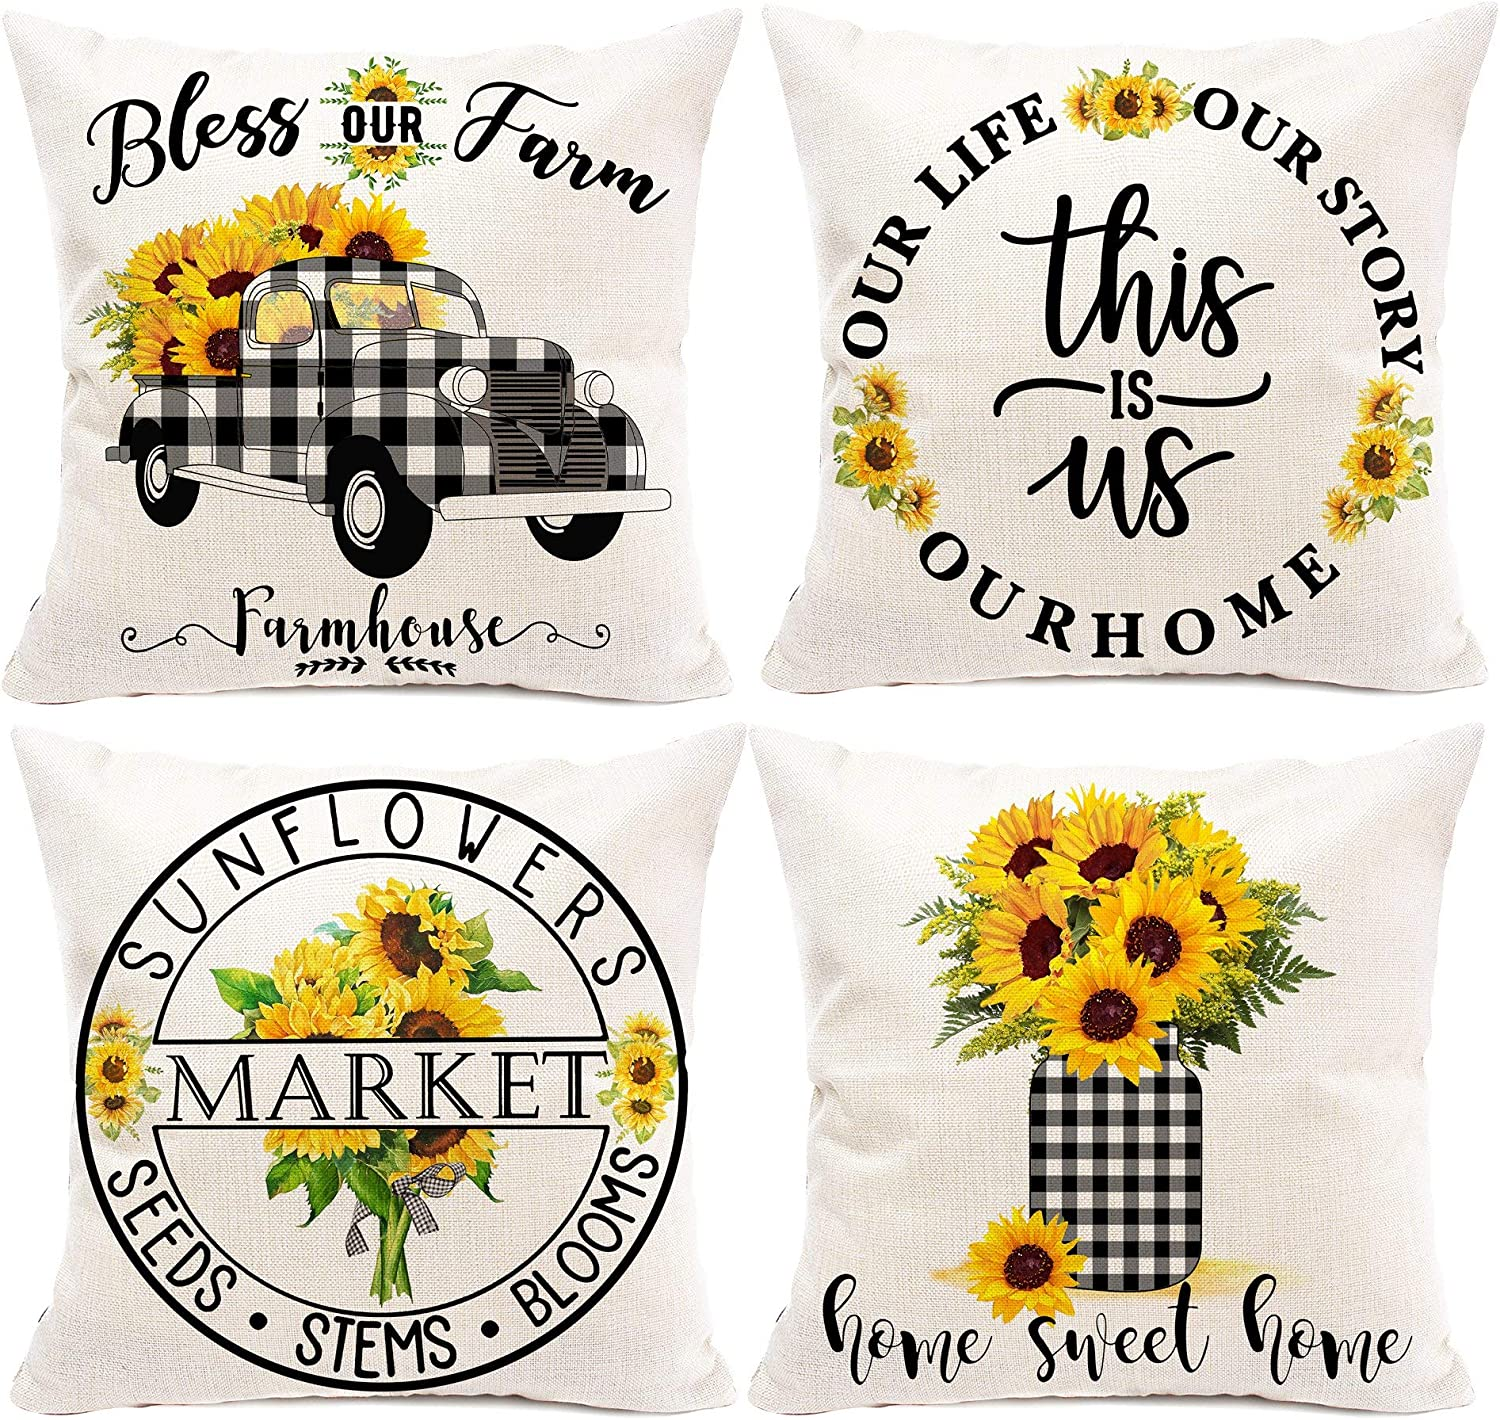 Hexagram Sunflower Farmhouse Summer Pillow Covers 18x18 Set of 4,Buffalo Plaid Spring and Summer Throw Pillows,Floral Truck Decorative Summer Outdoor Sunflower Home Decor for Couch Patio